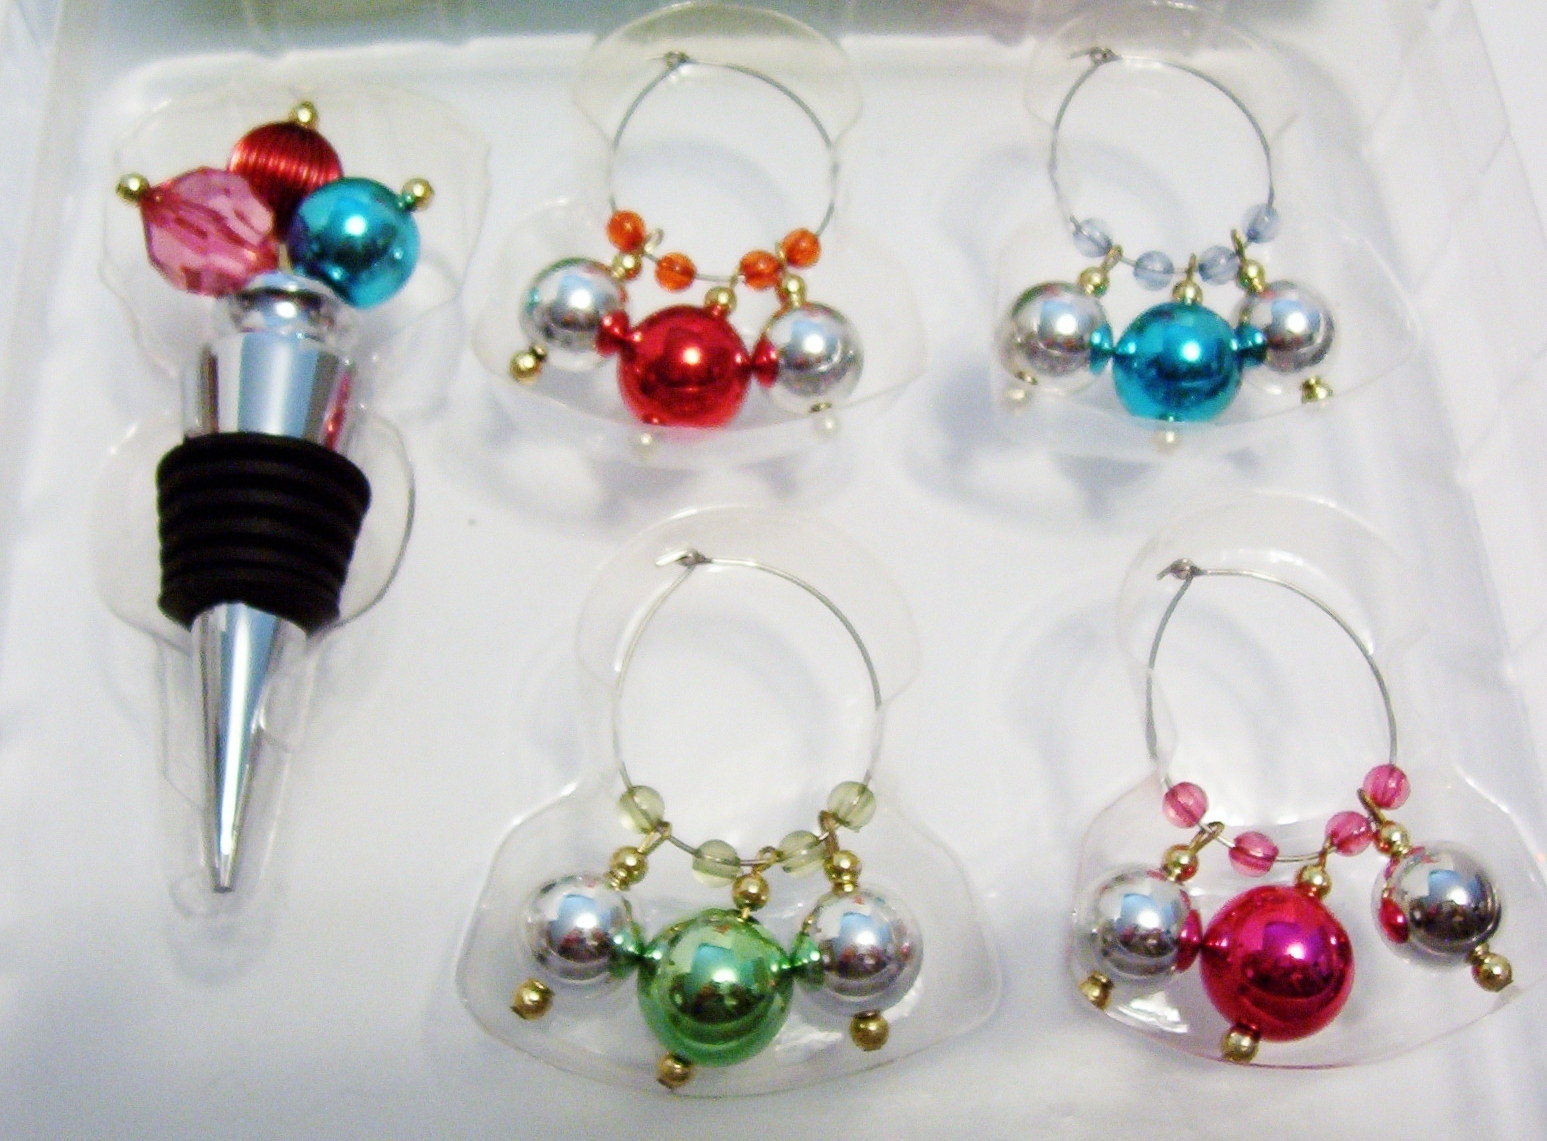 Food Network Wine Stopper and 4 Wine Glass Charm Set Multi Color Ornaments Box